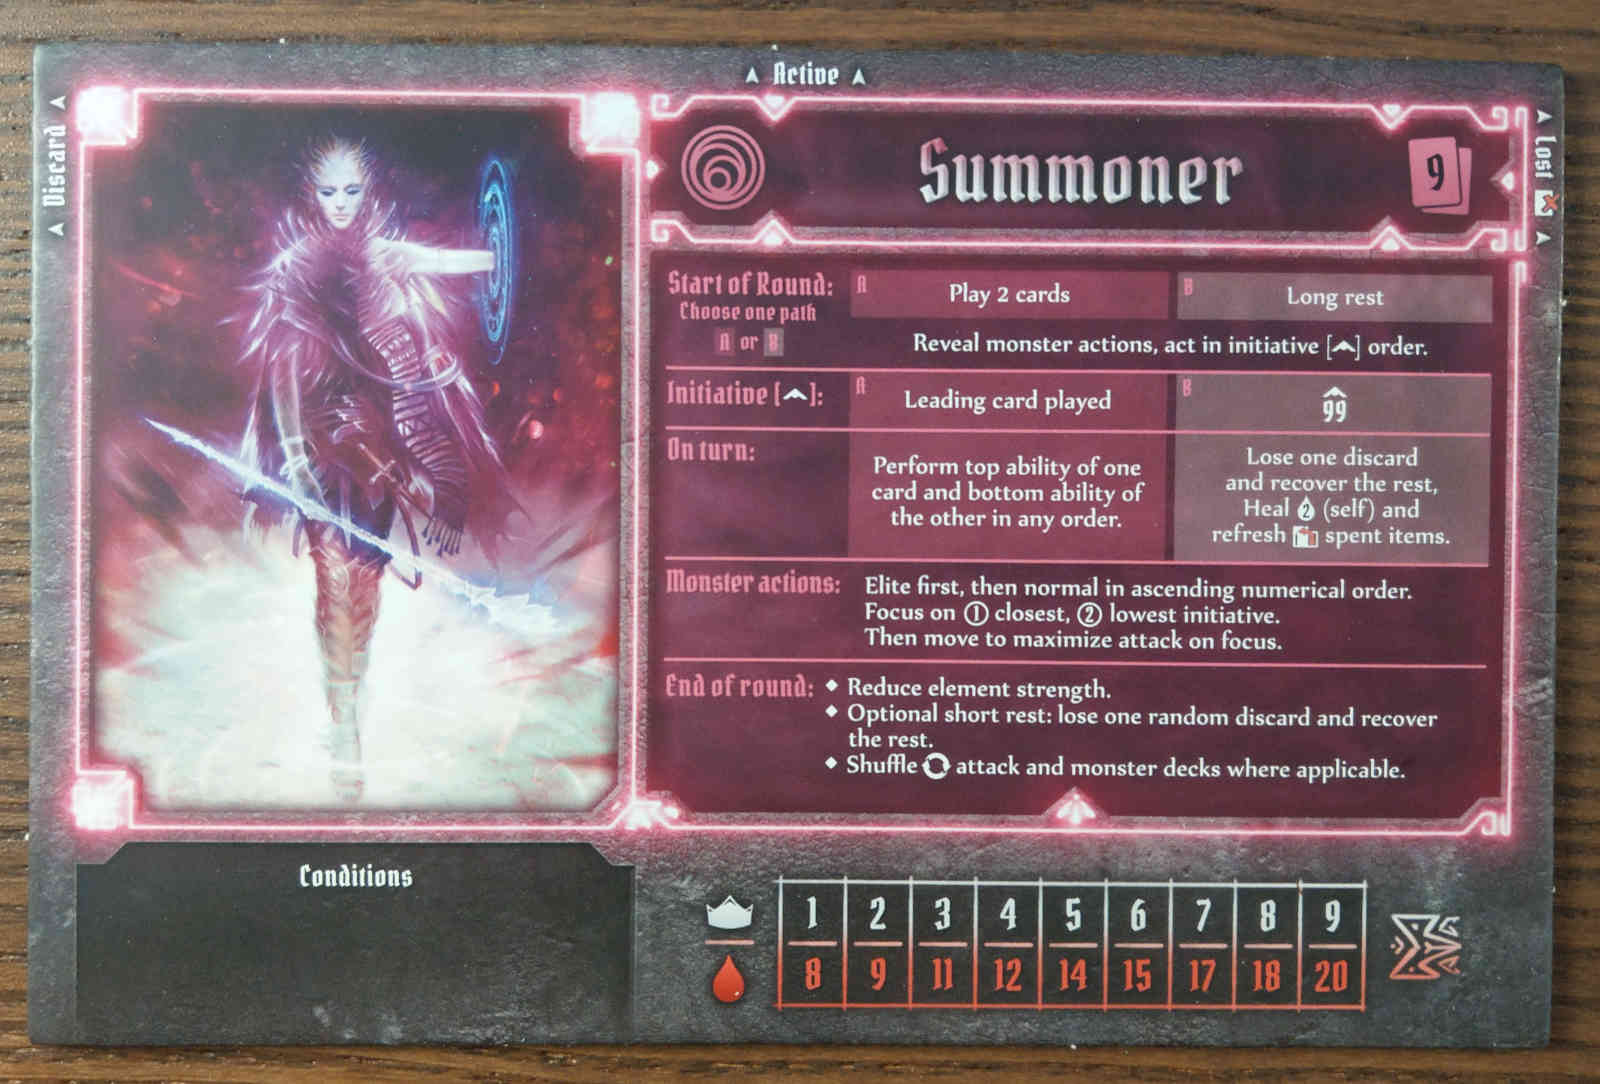 Gloomhaven Summoner class board with hit points and experience by level